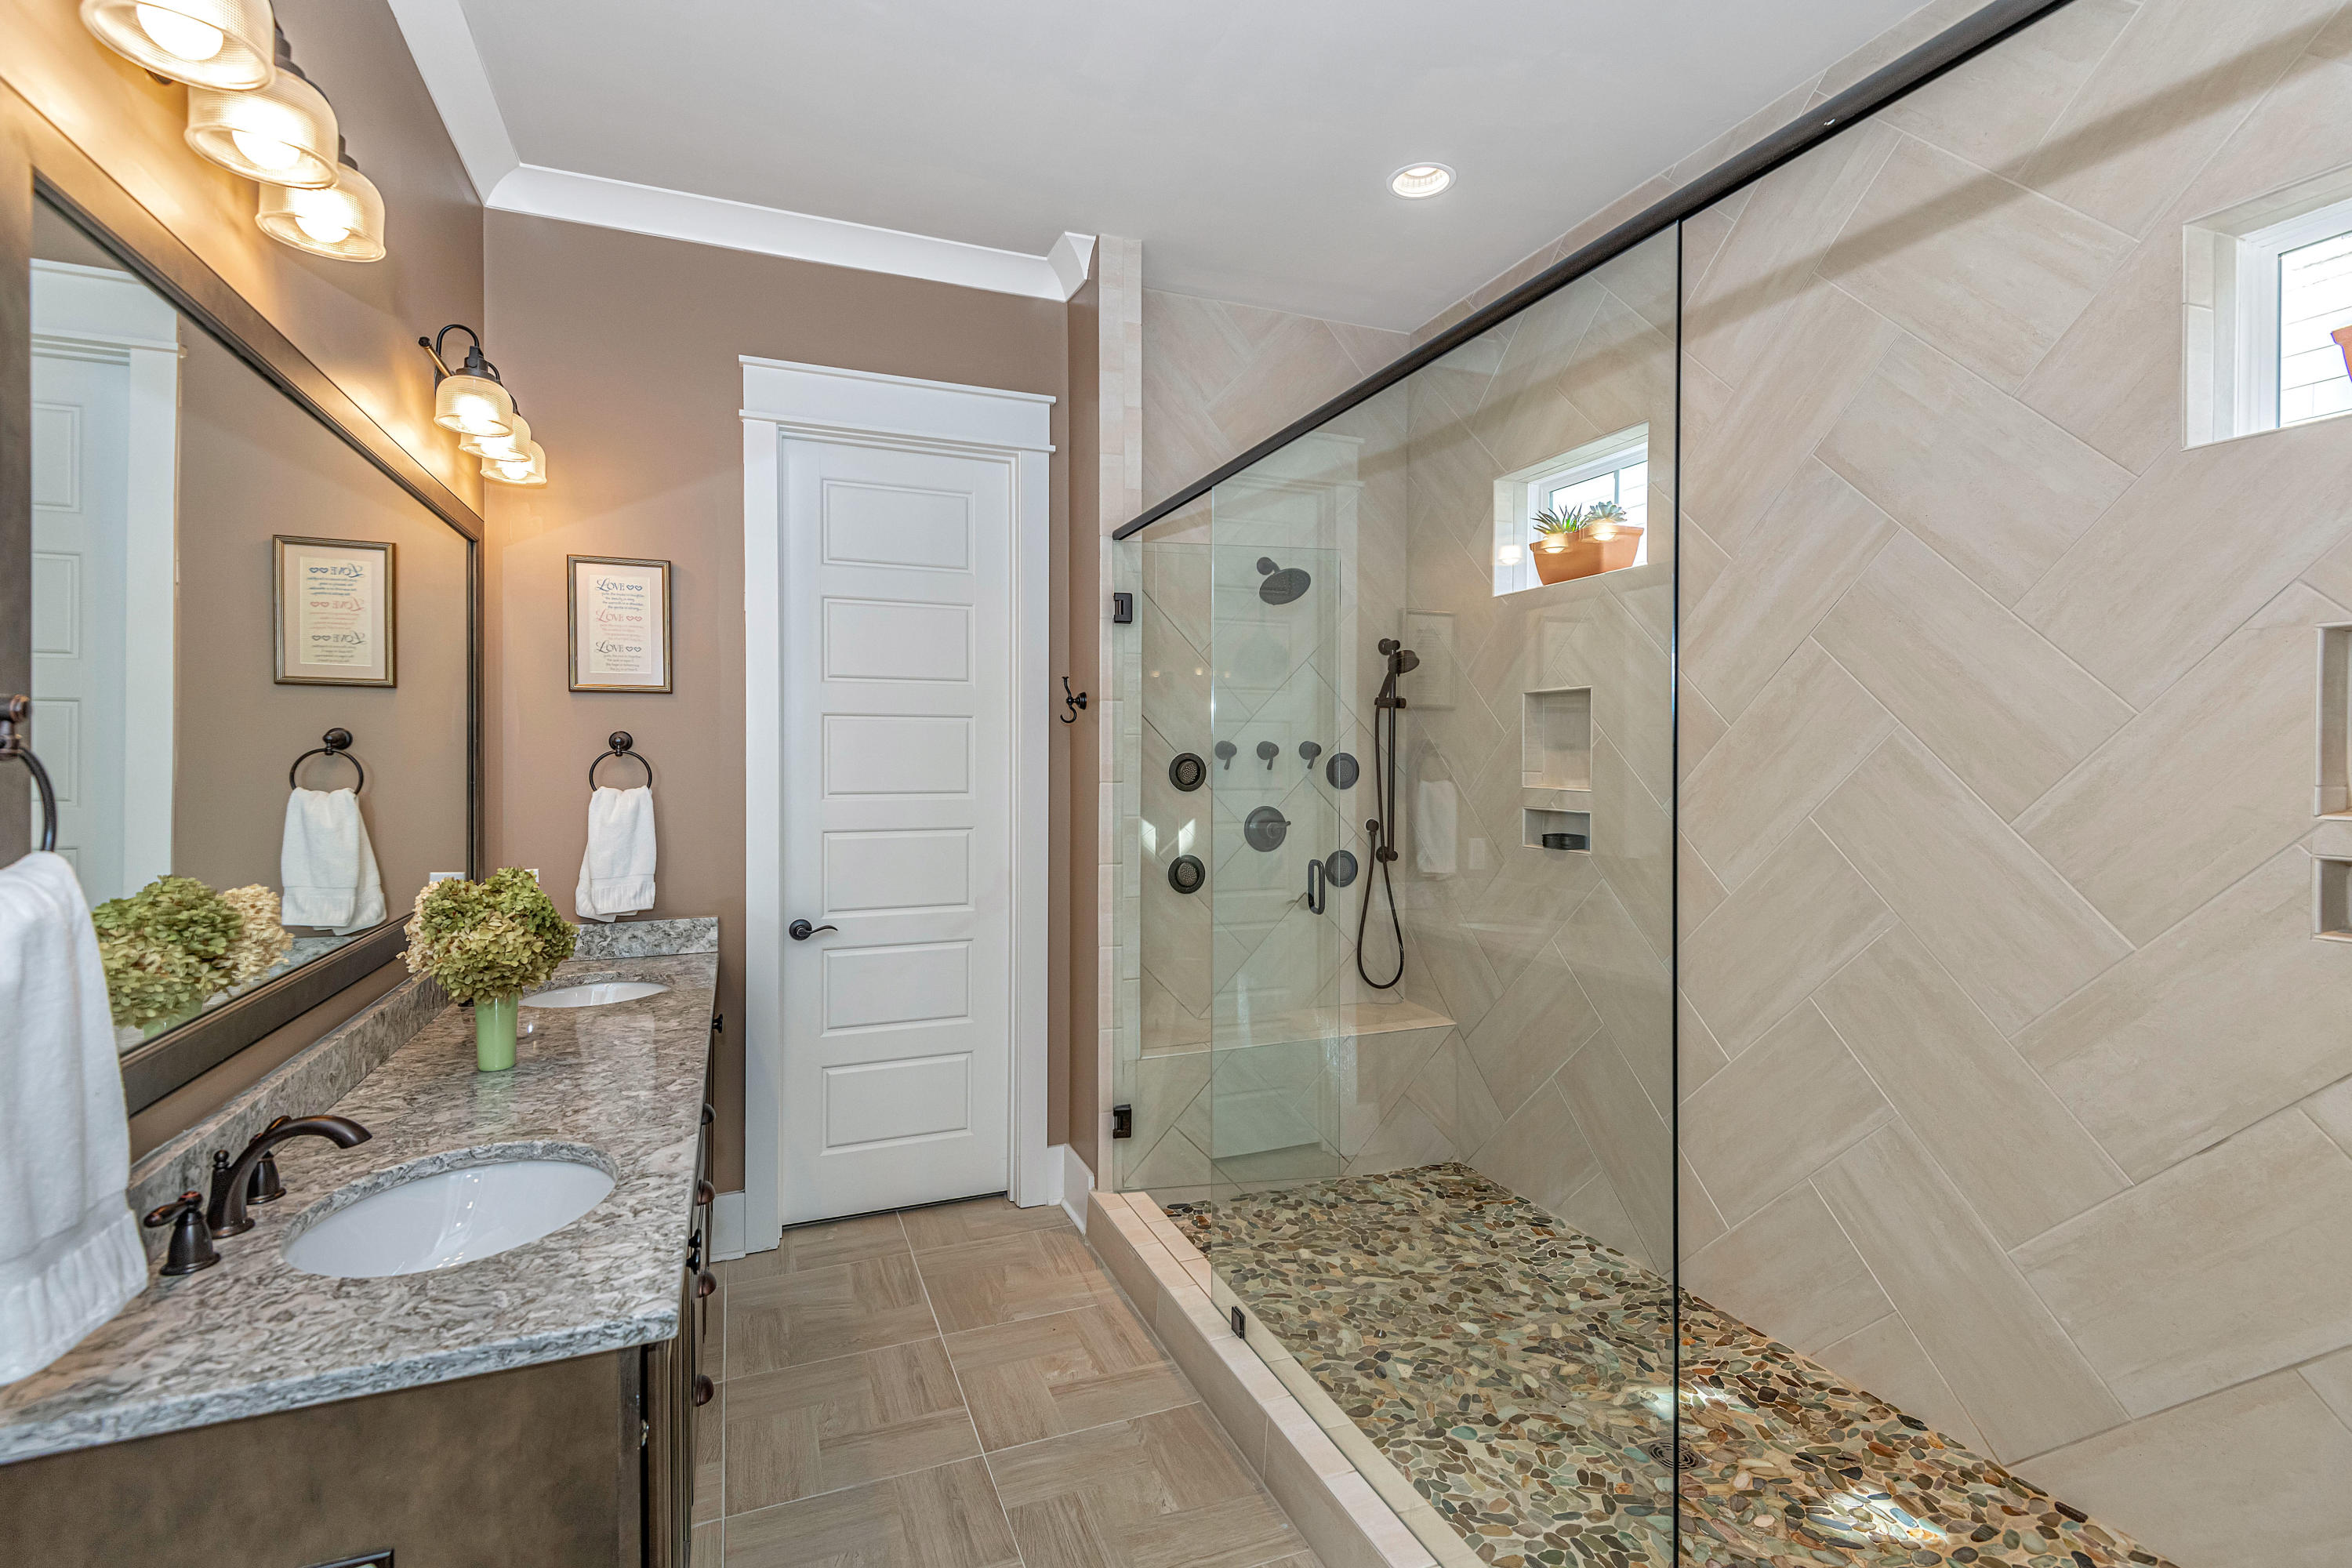 Dunes West Homes For Sale - 2870 Clearwater, Mount Pleasant, SC - 25